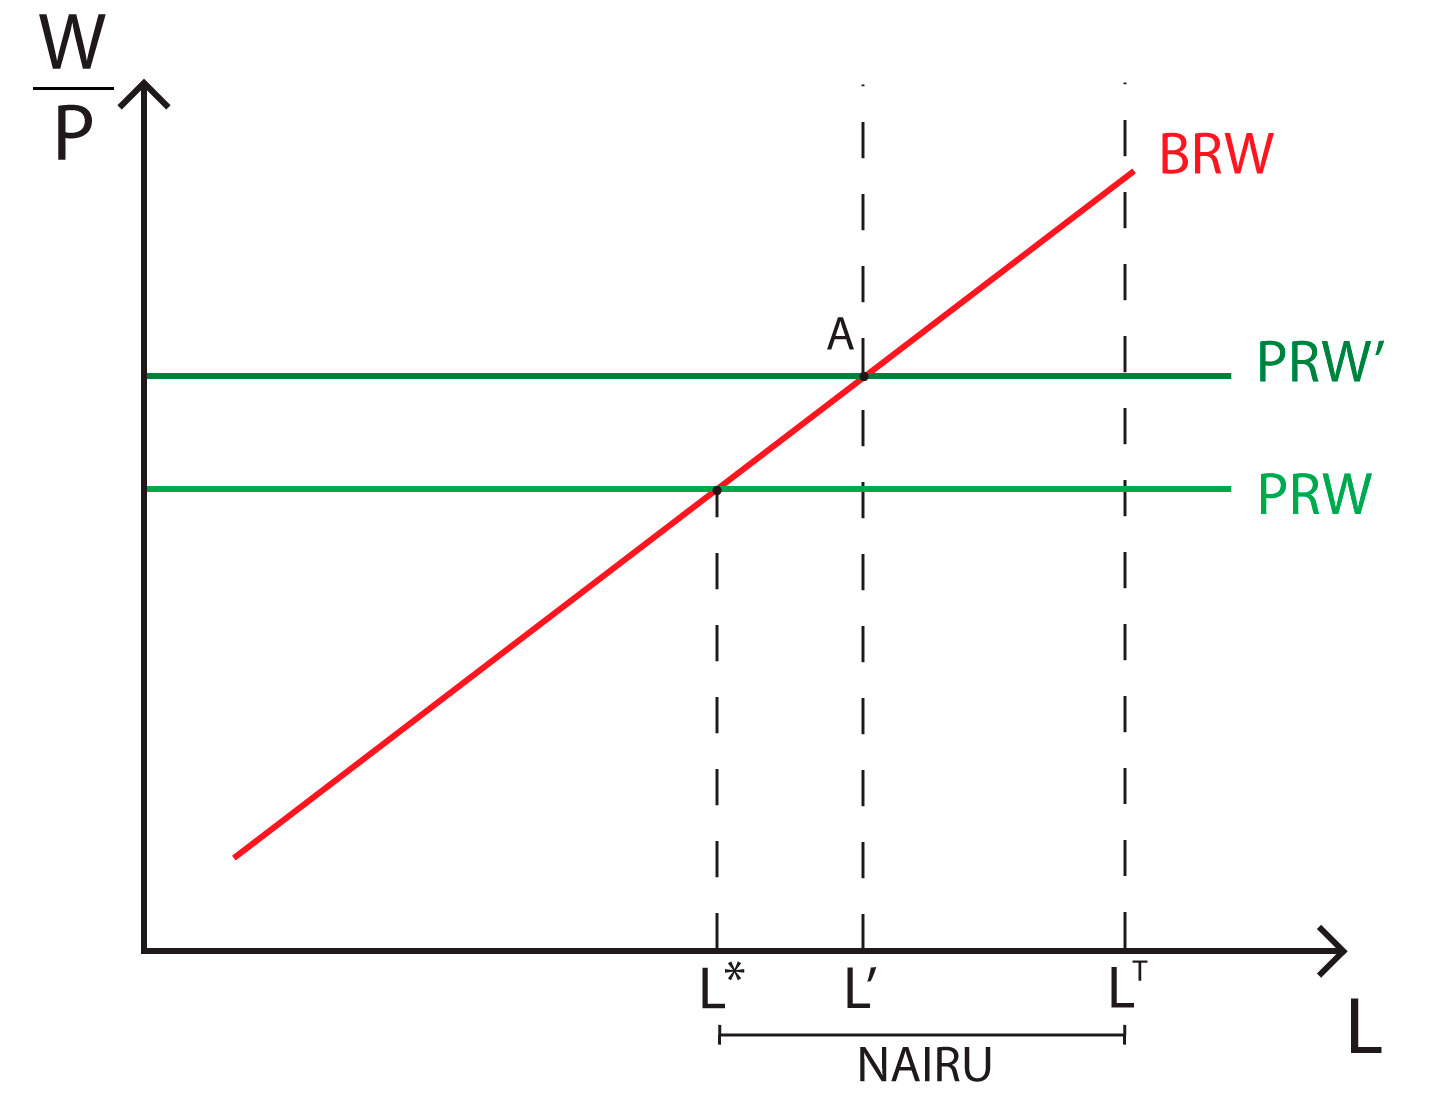 Layard-Nickell NAIRU model